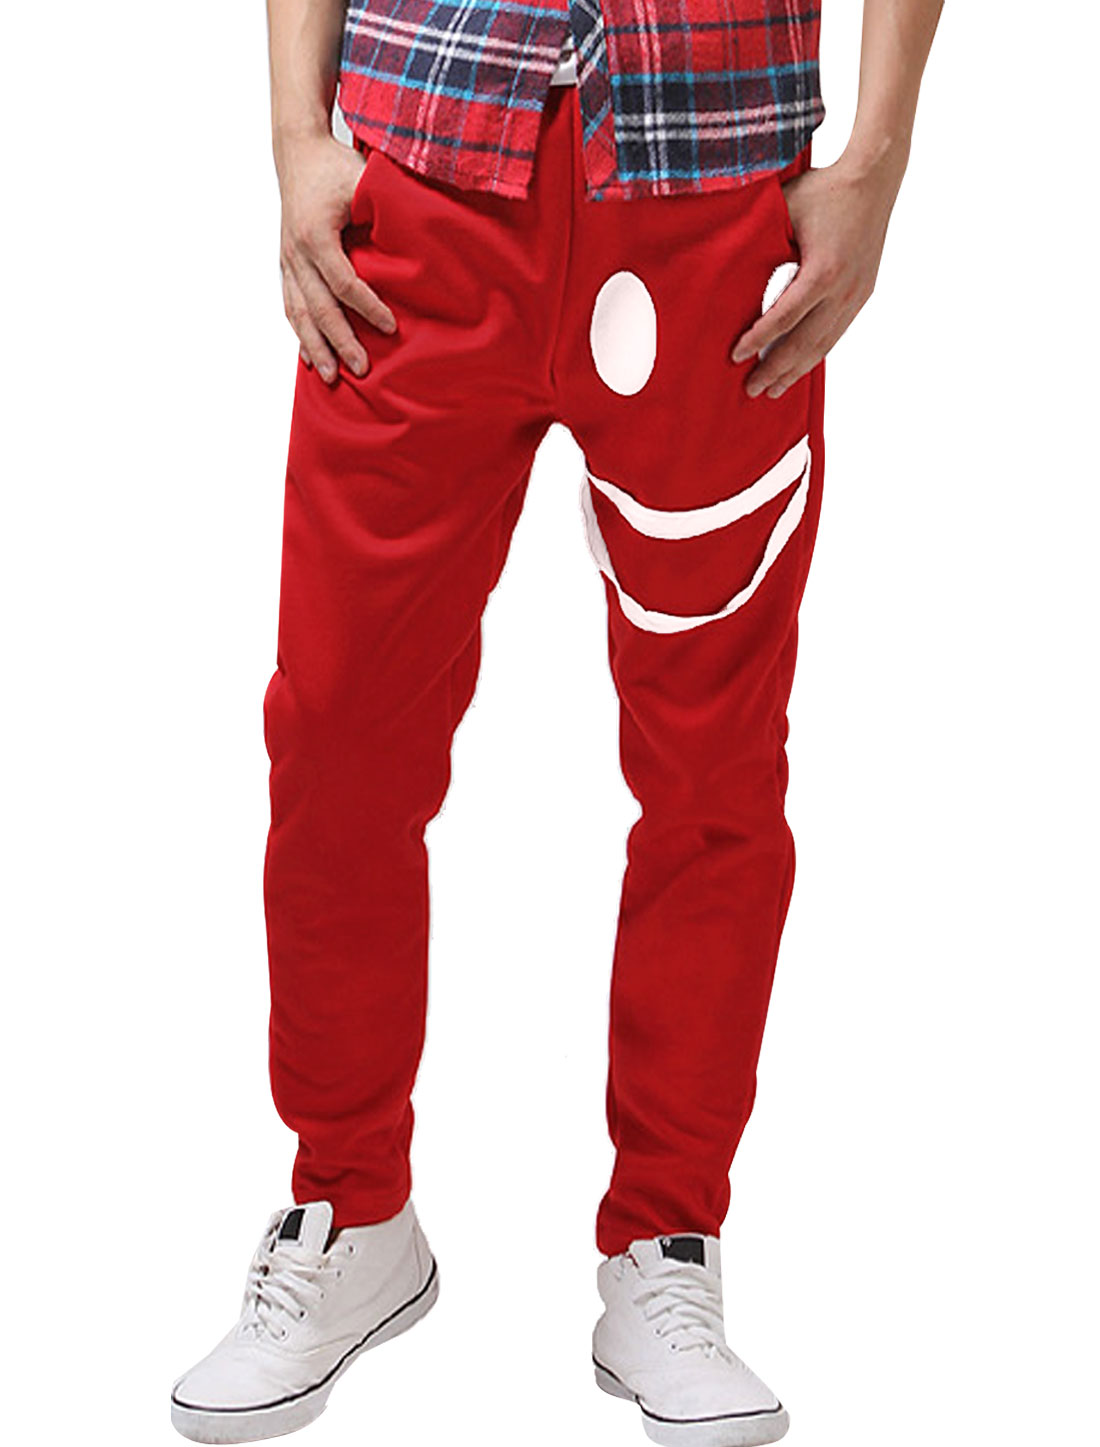 Men Elastic Waist Drawstring Smily Face Design Sports Pants Red W30